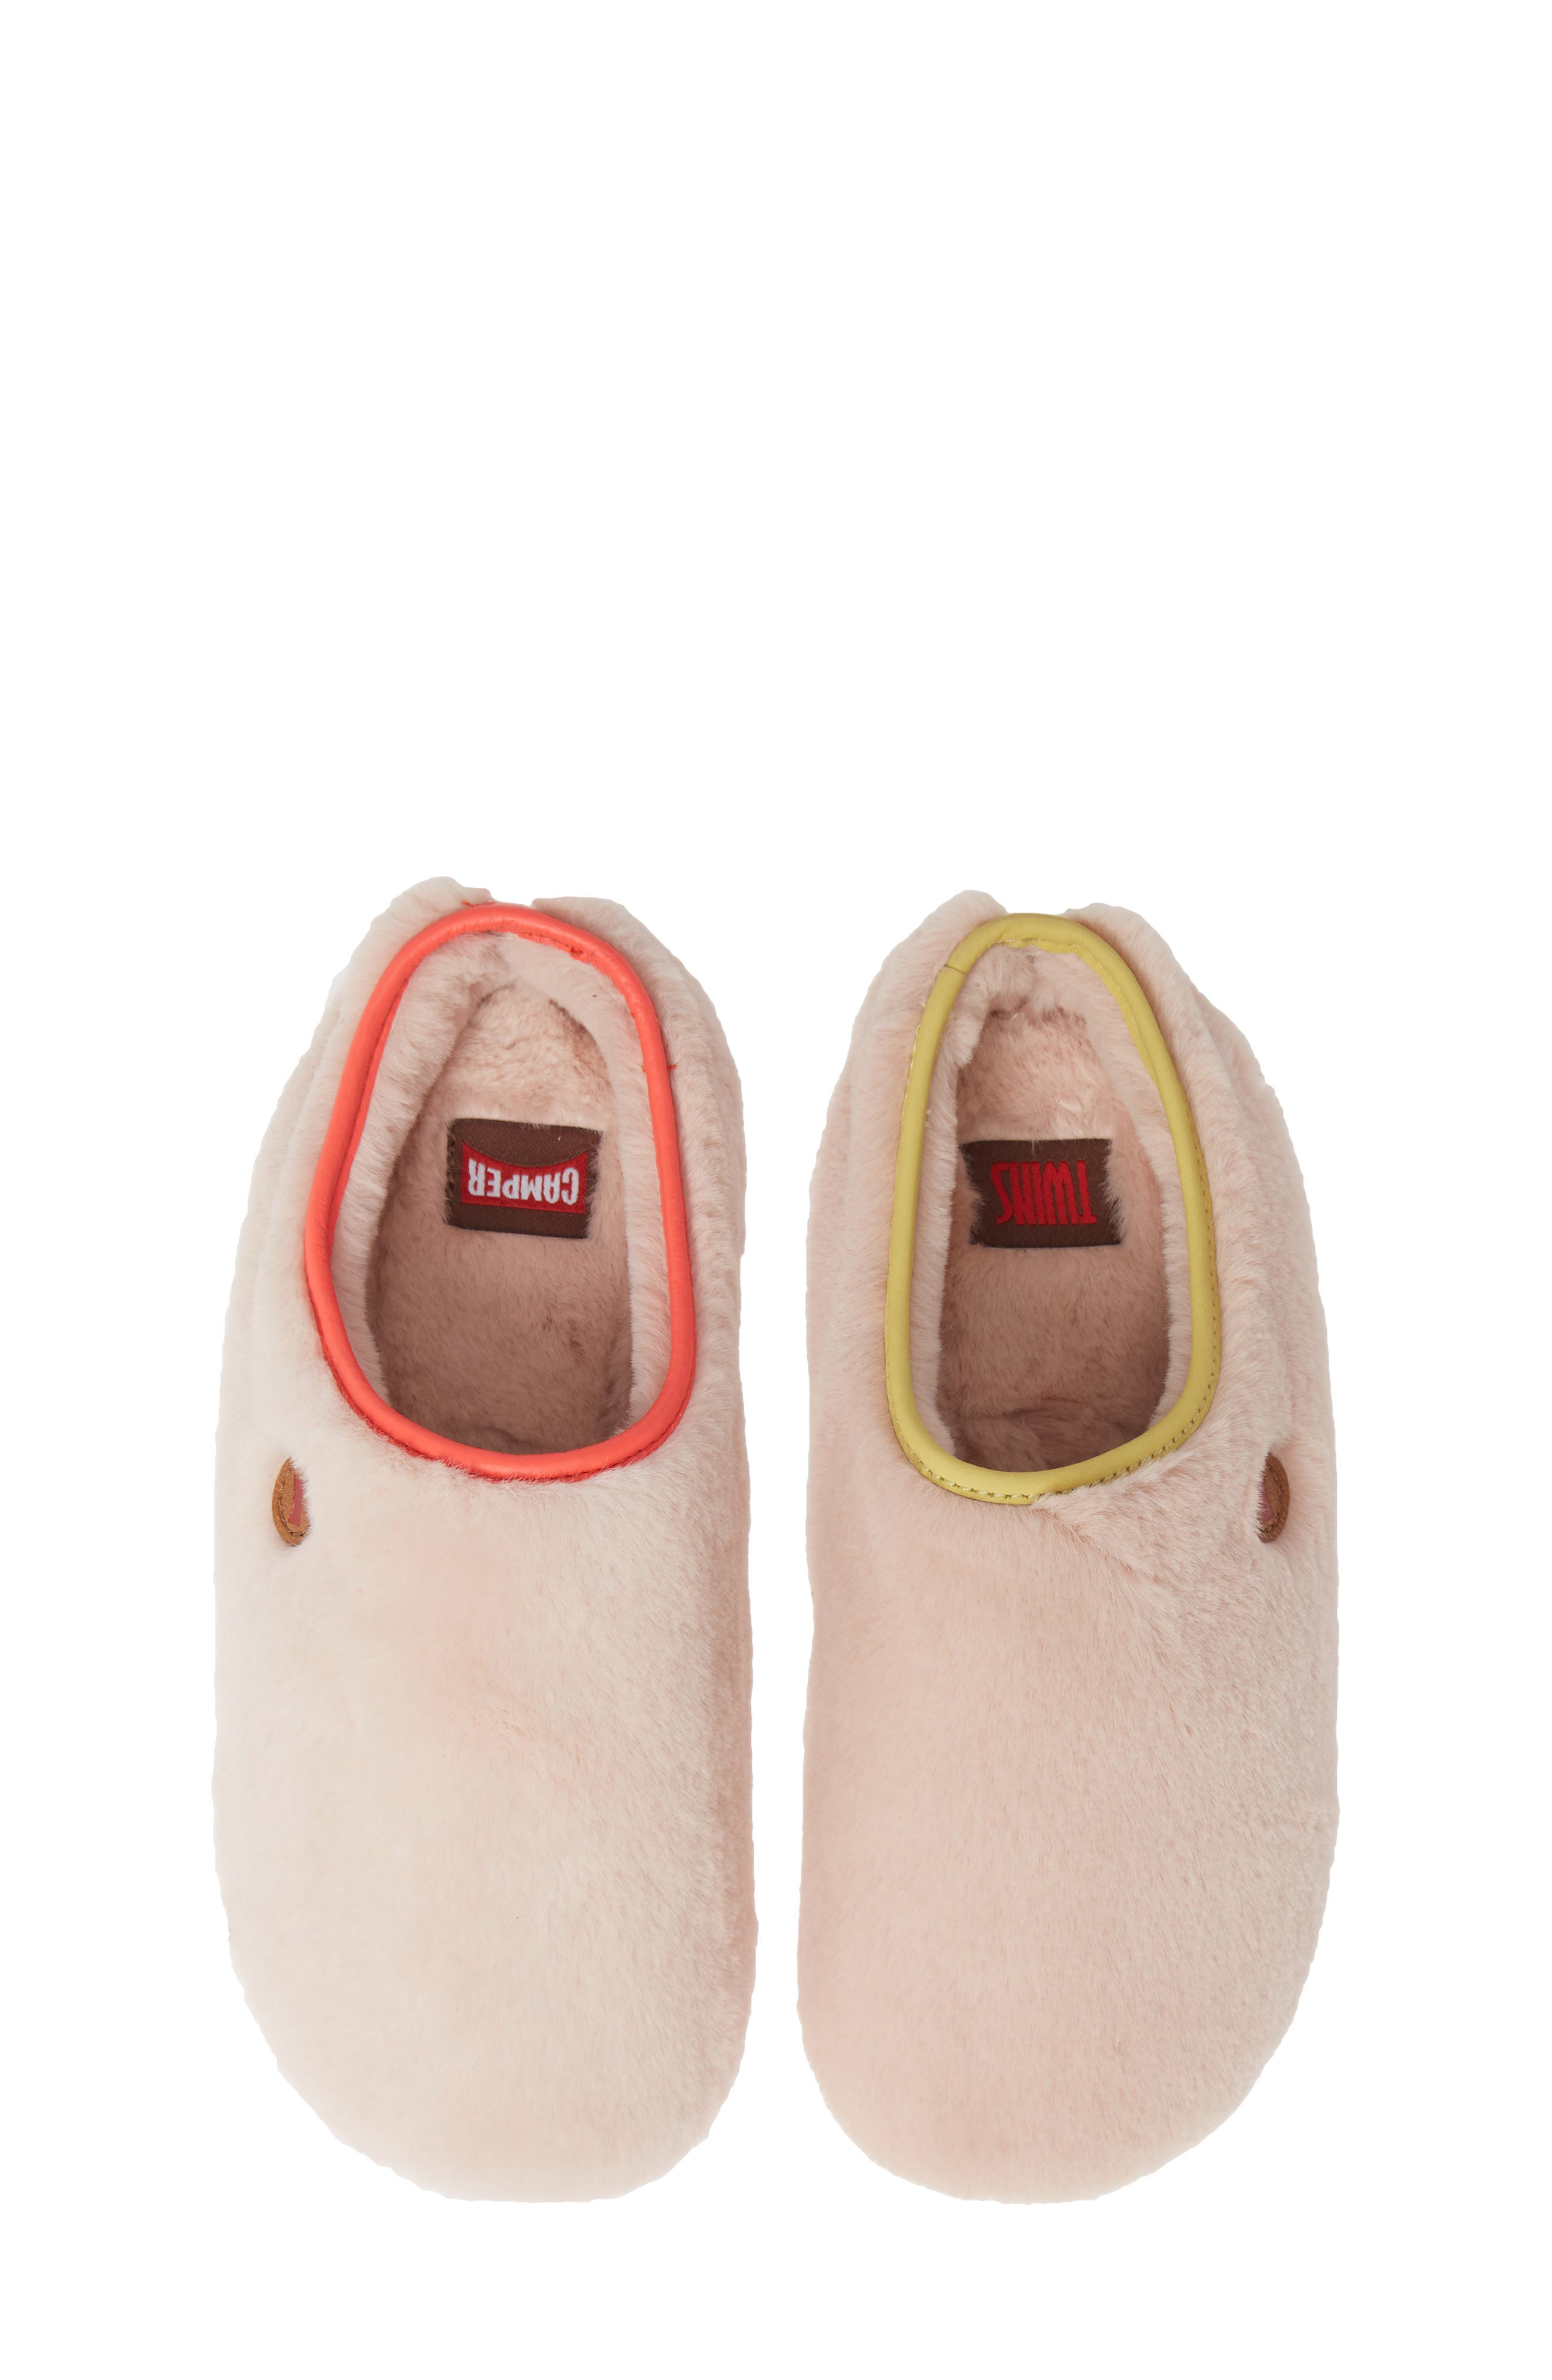 CAMPER,                             TWS Slippers,                             Main thumbnail 1, color,                             285